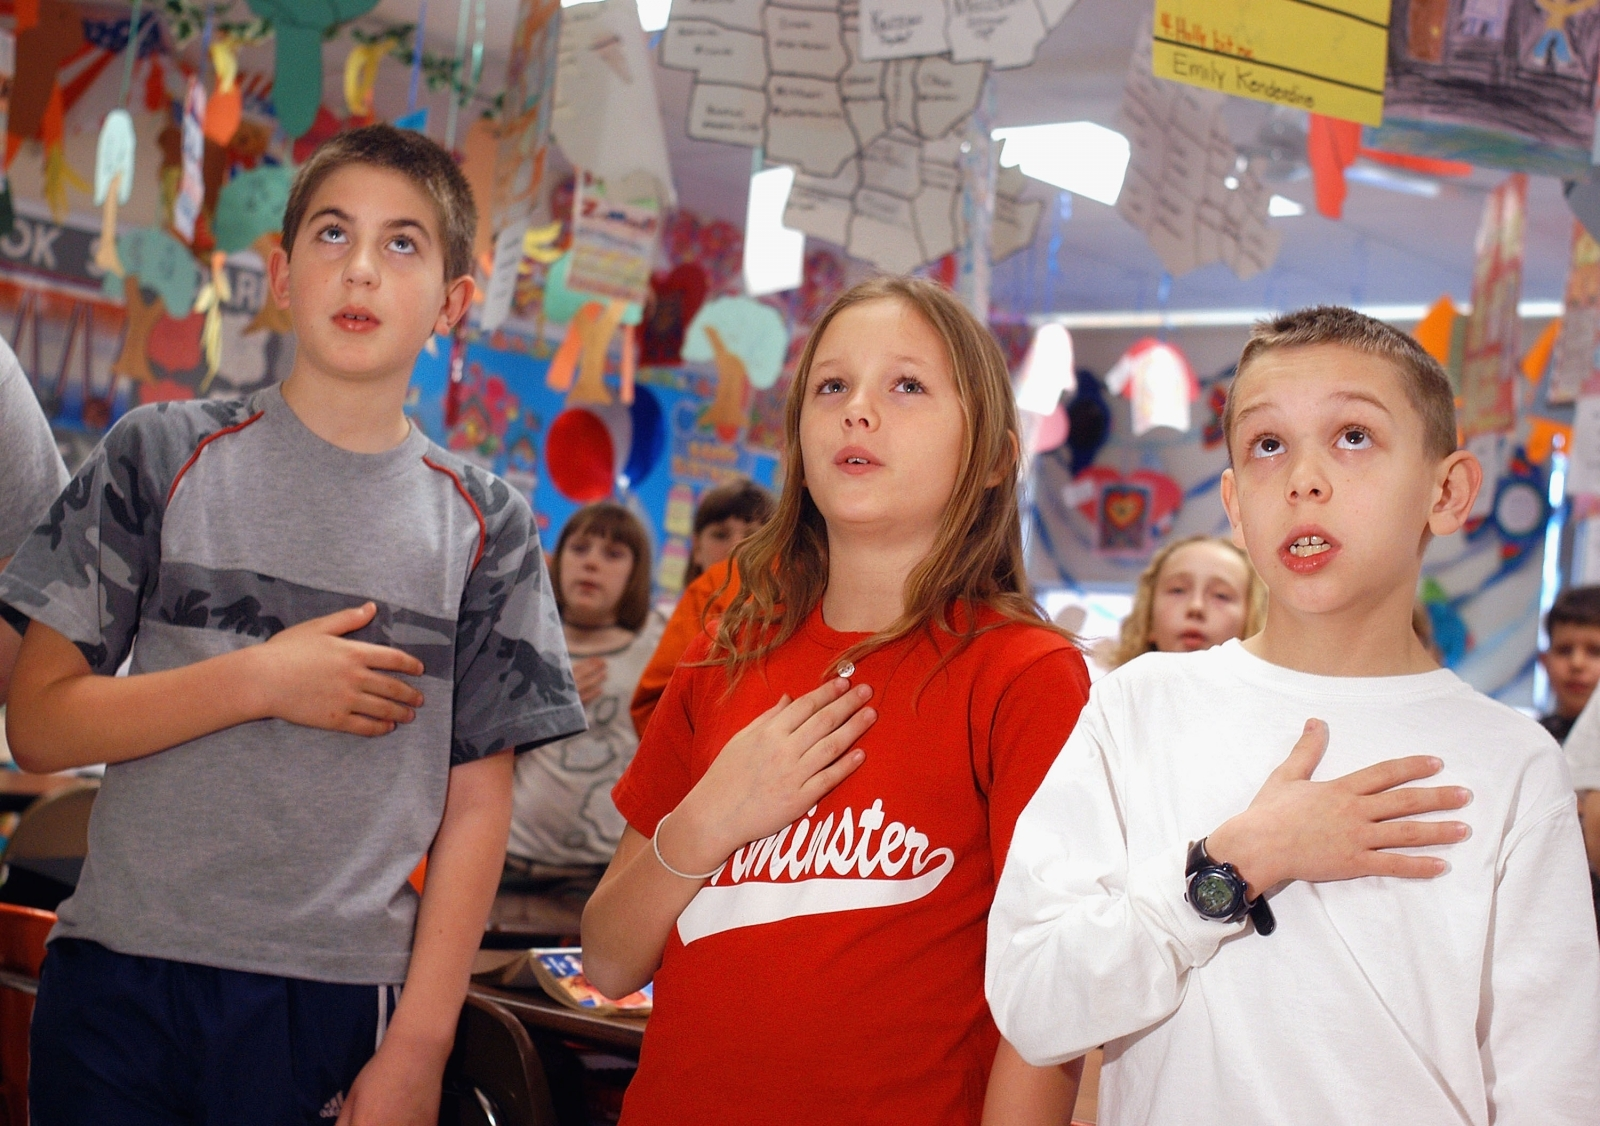 pledge of allegiance in school Umimaginative fake news publishers have recycled an old hoax about president obama's banning the pledge of allegiance the pledge of allegiance in us schools.